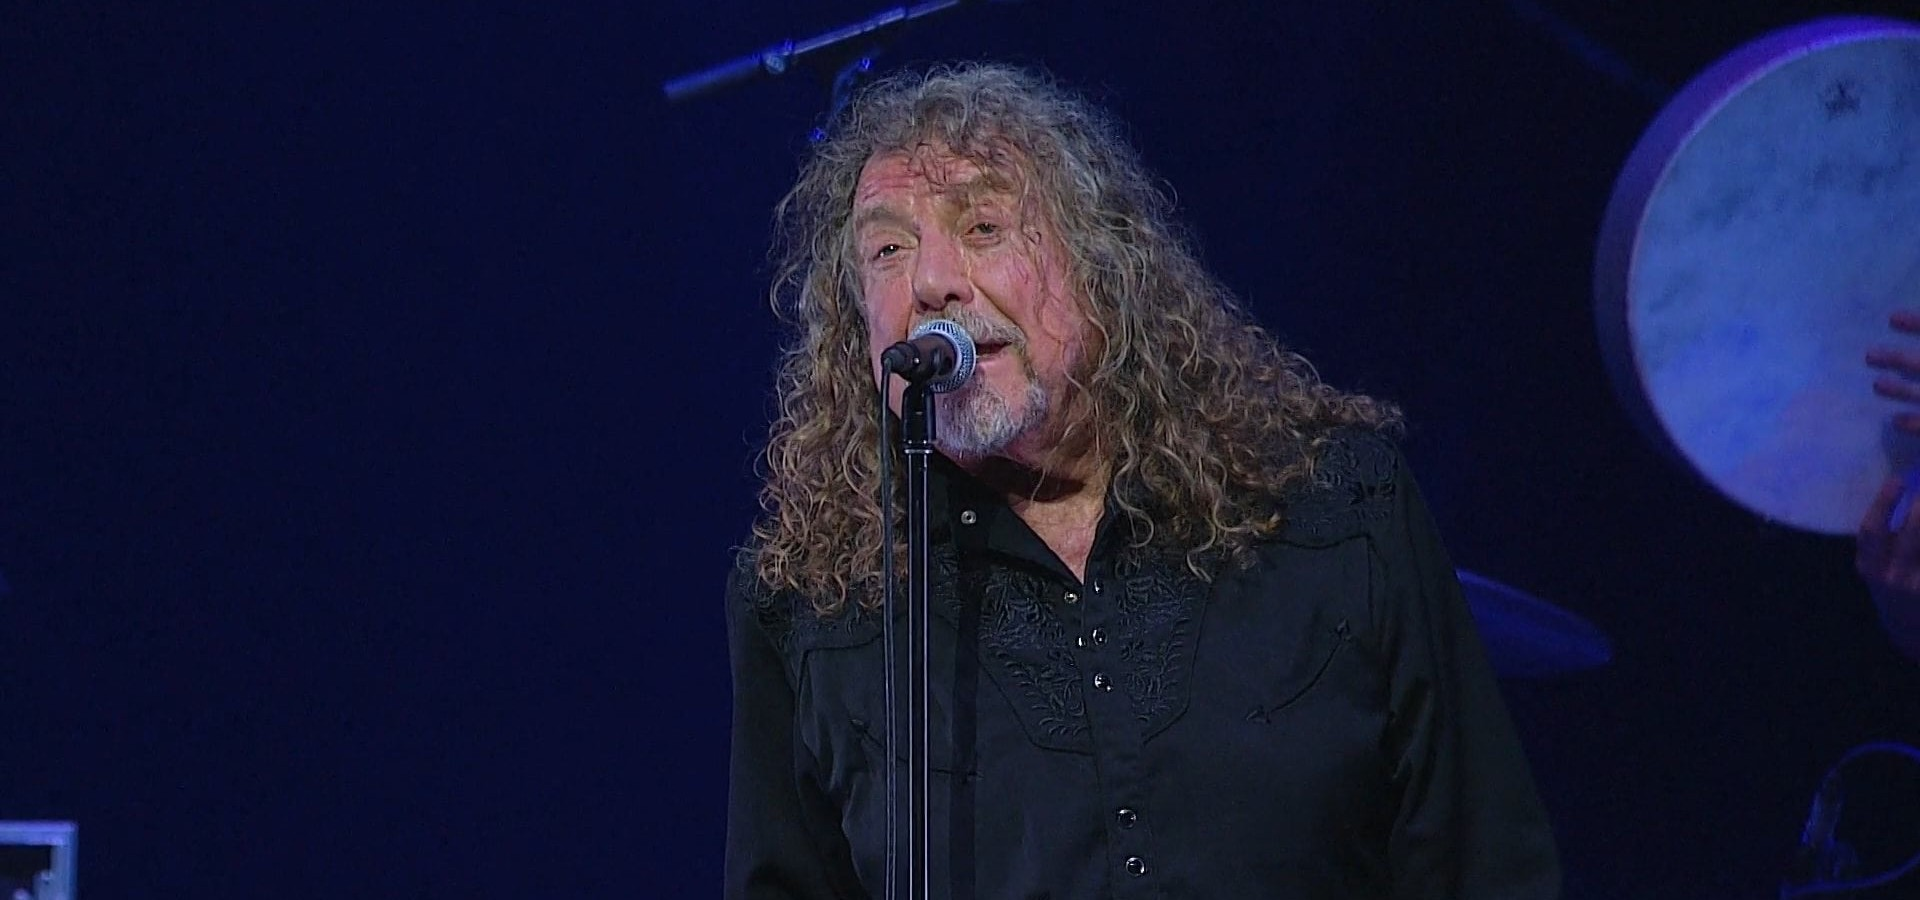 Robert Plant and the Sensational Space Shifters: Live at David Lynch's Festival of Disruption